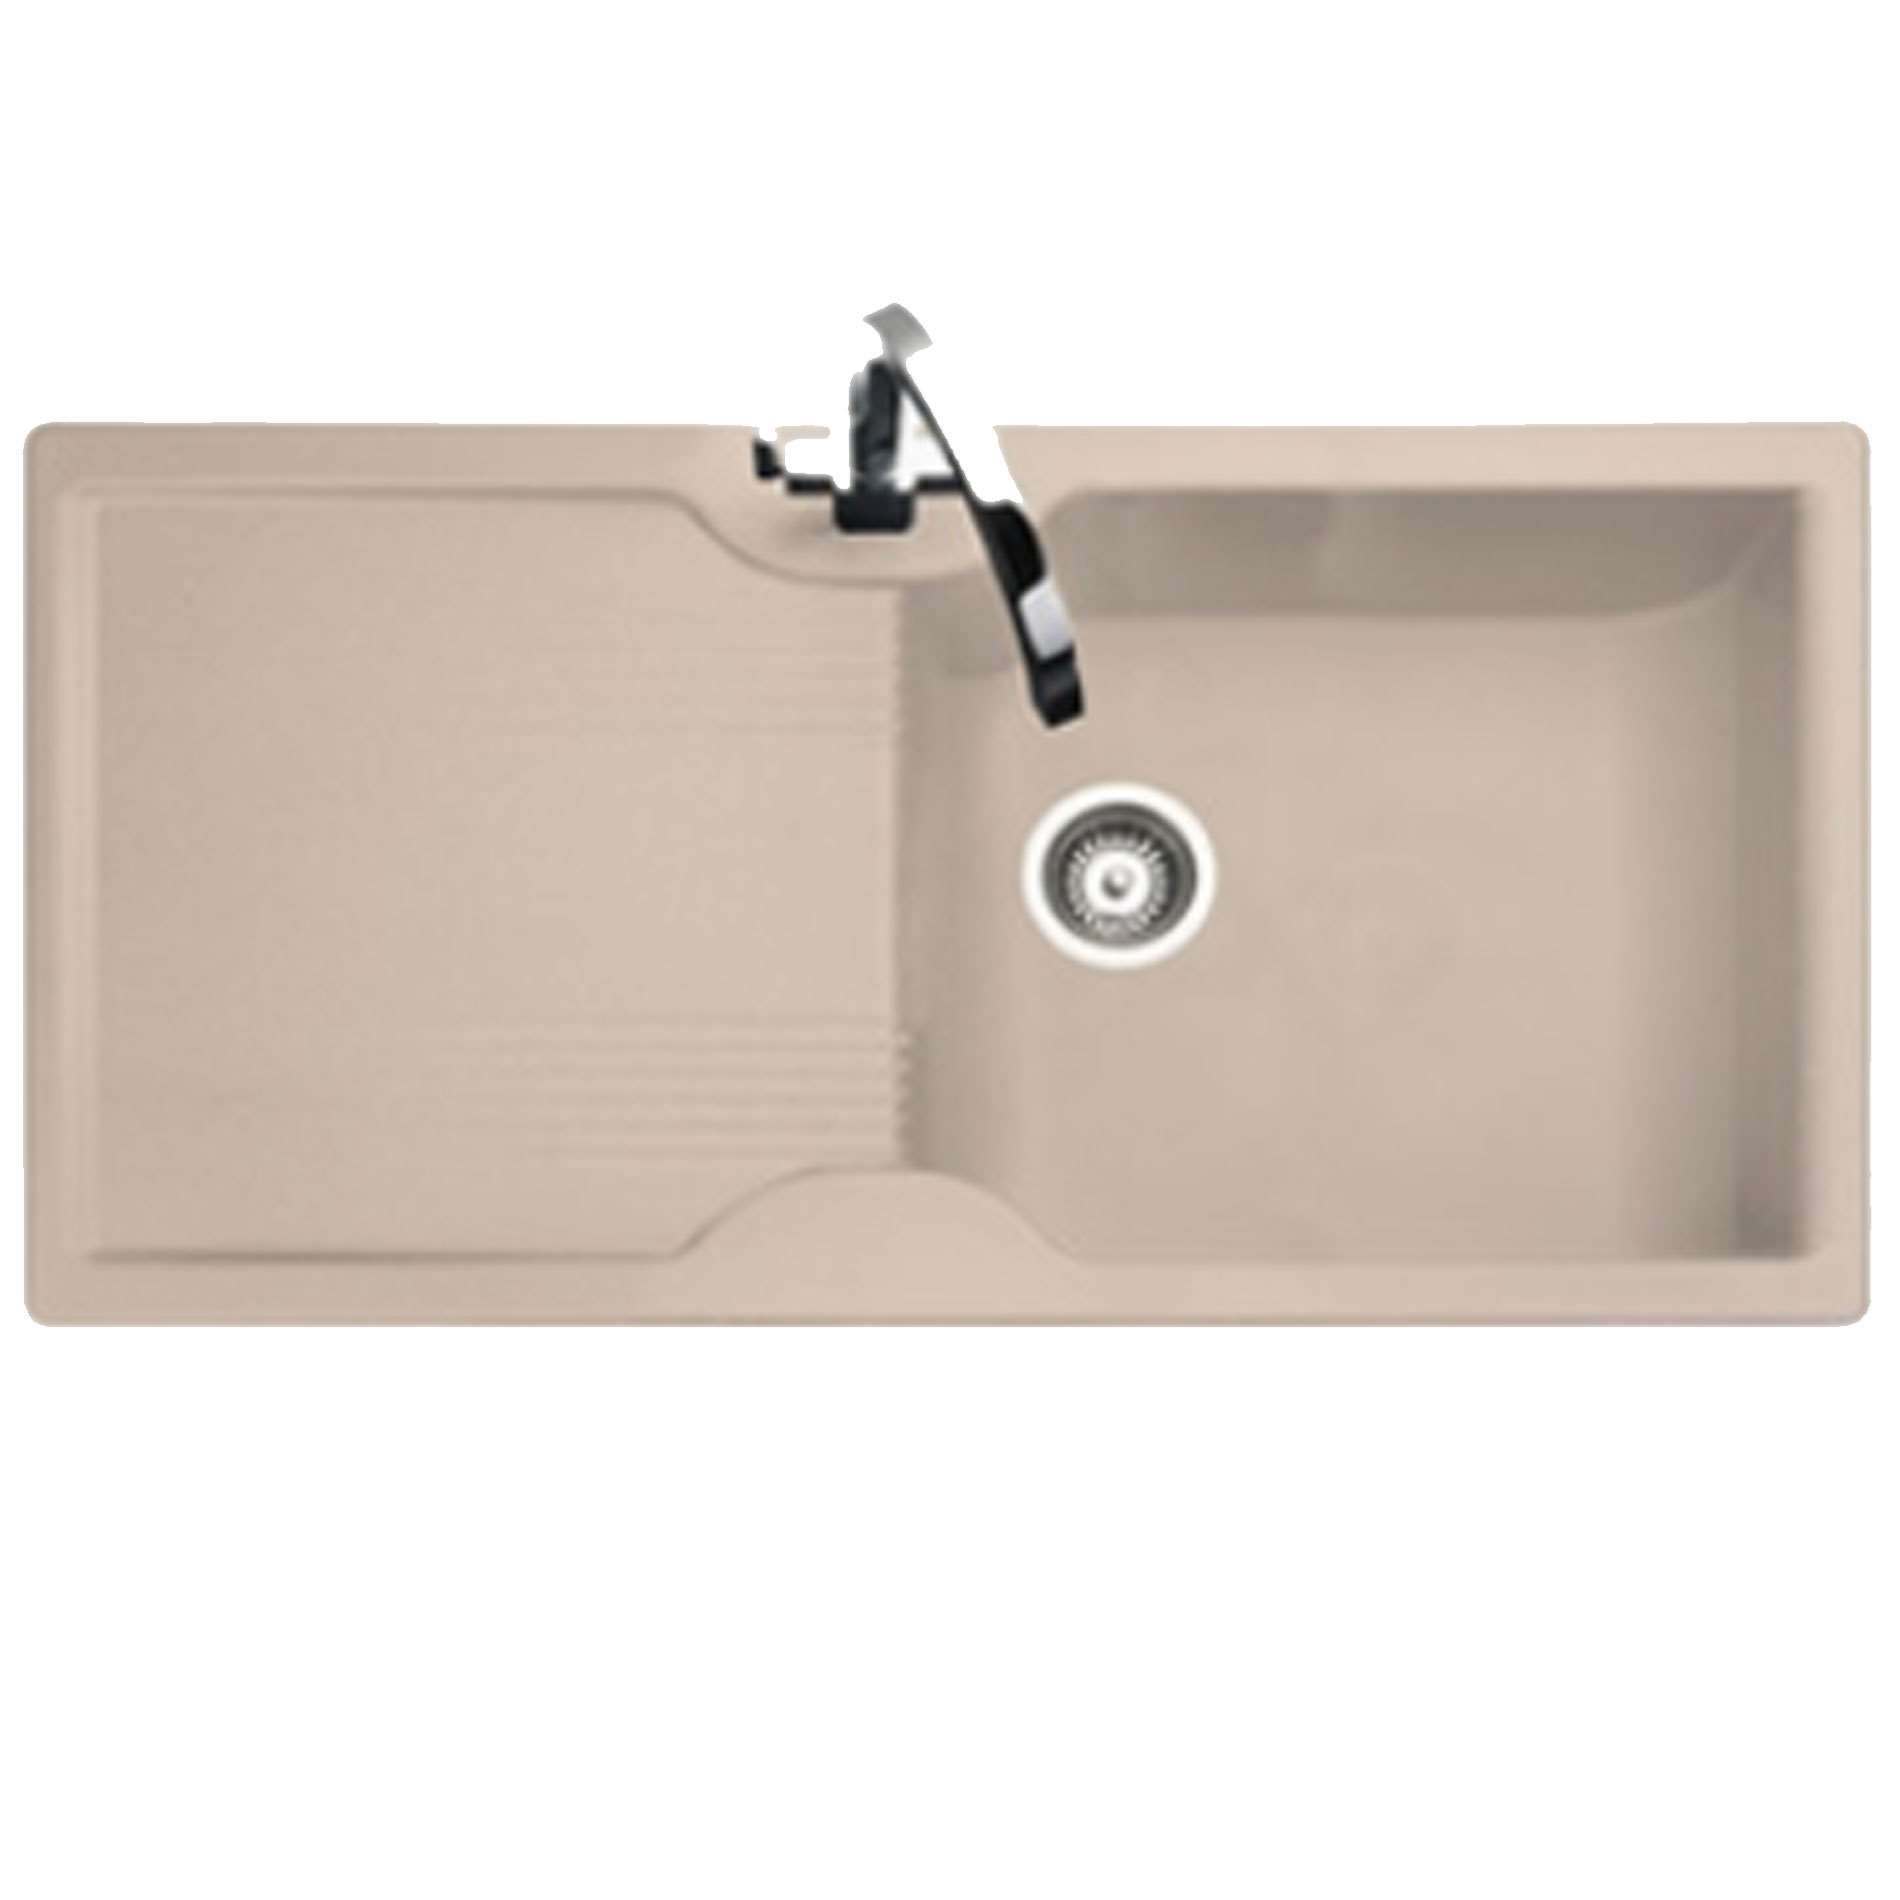 Rangemaster Lunar Lu9851 Oatmeal Neo Rock Sink Kitchen